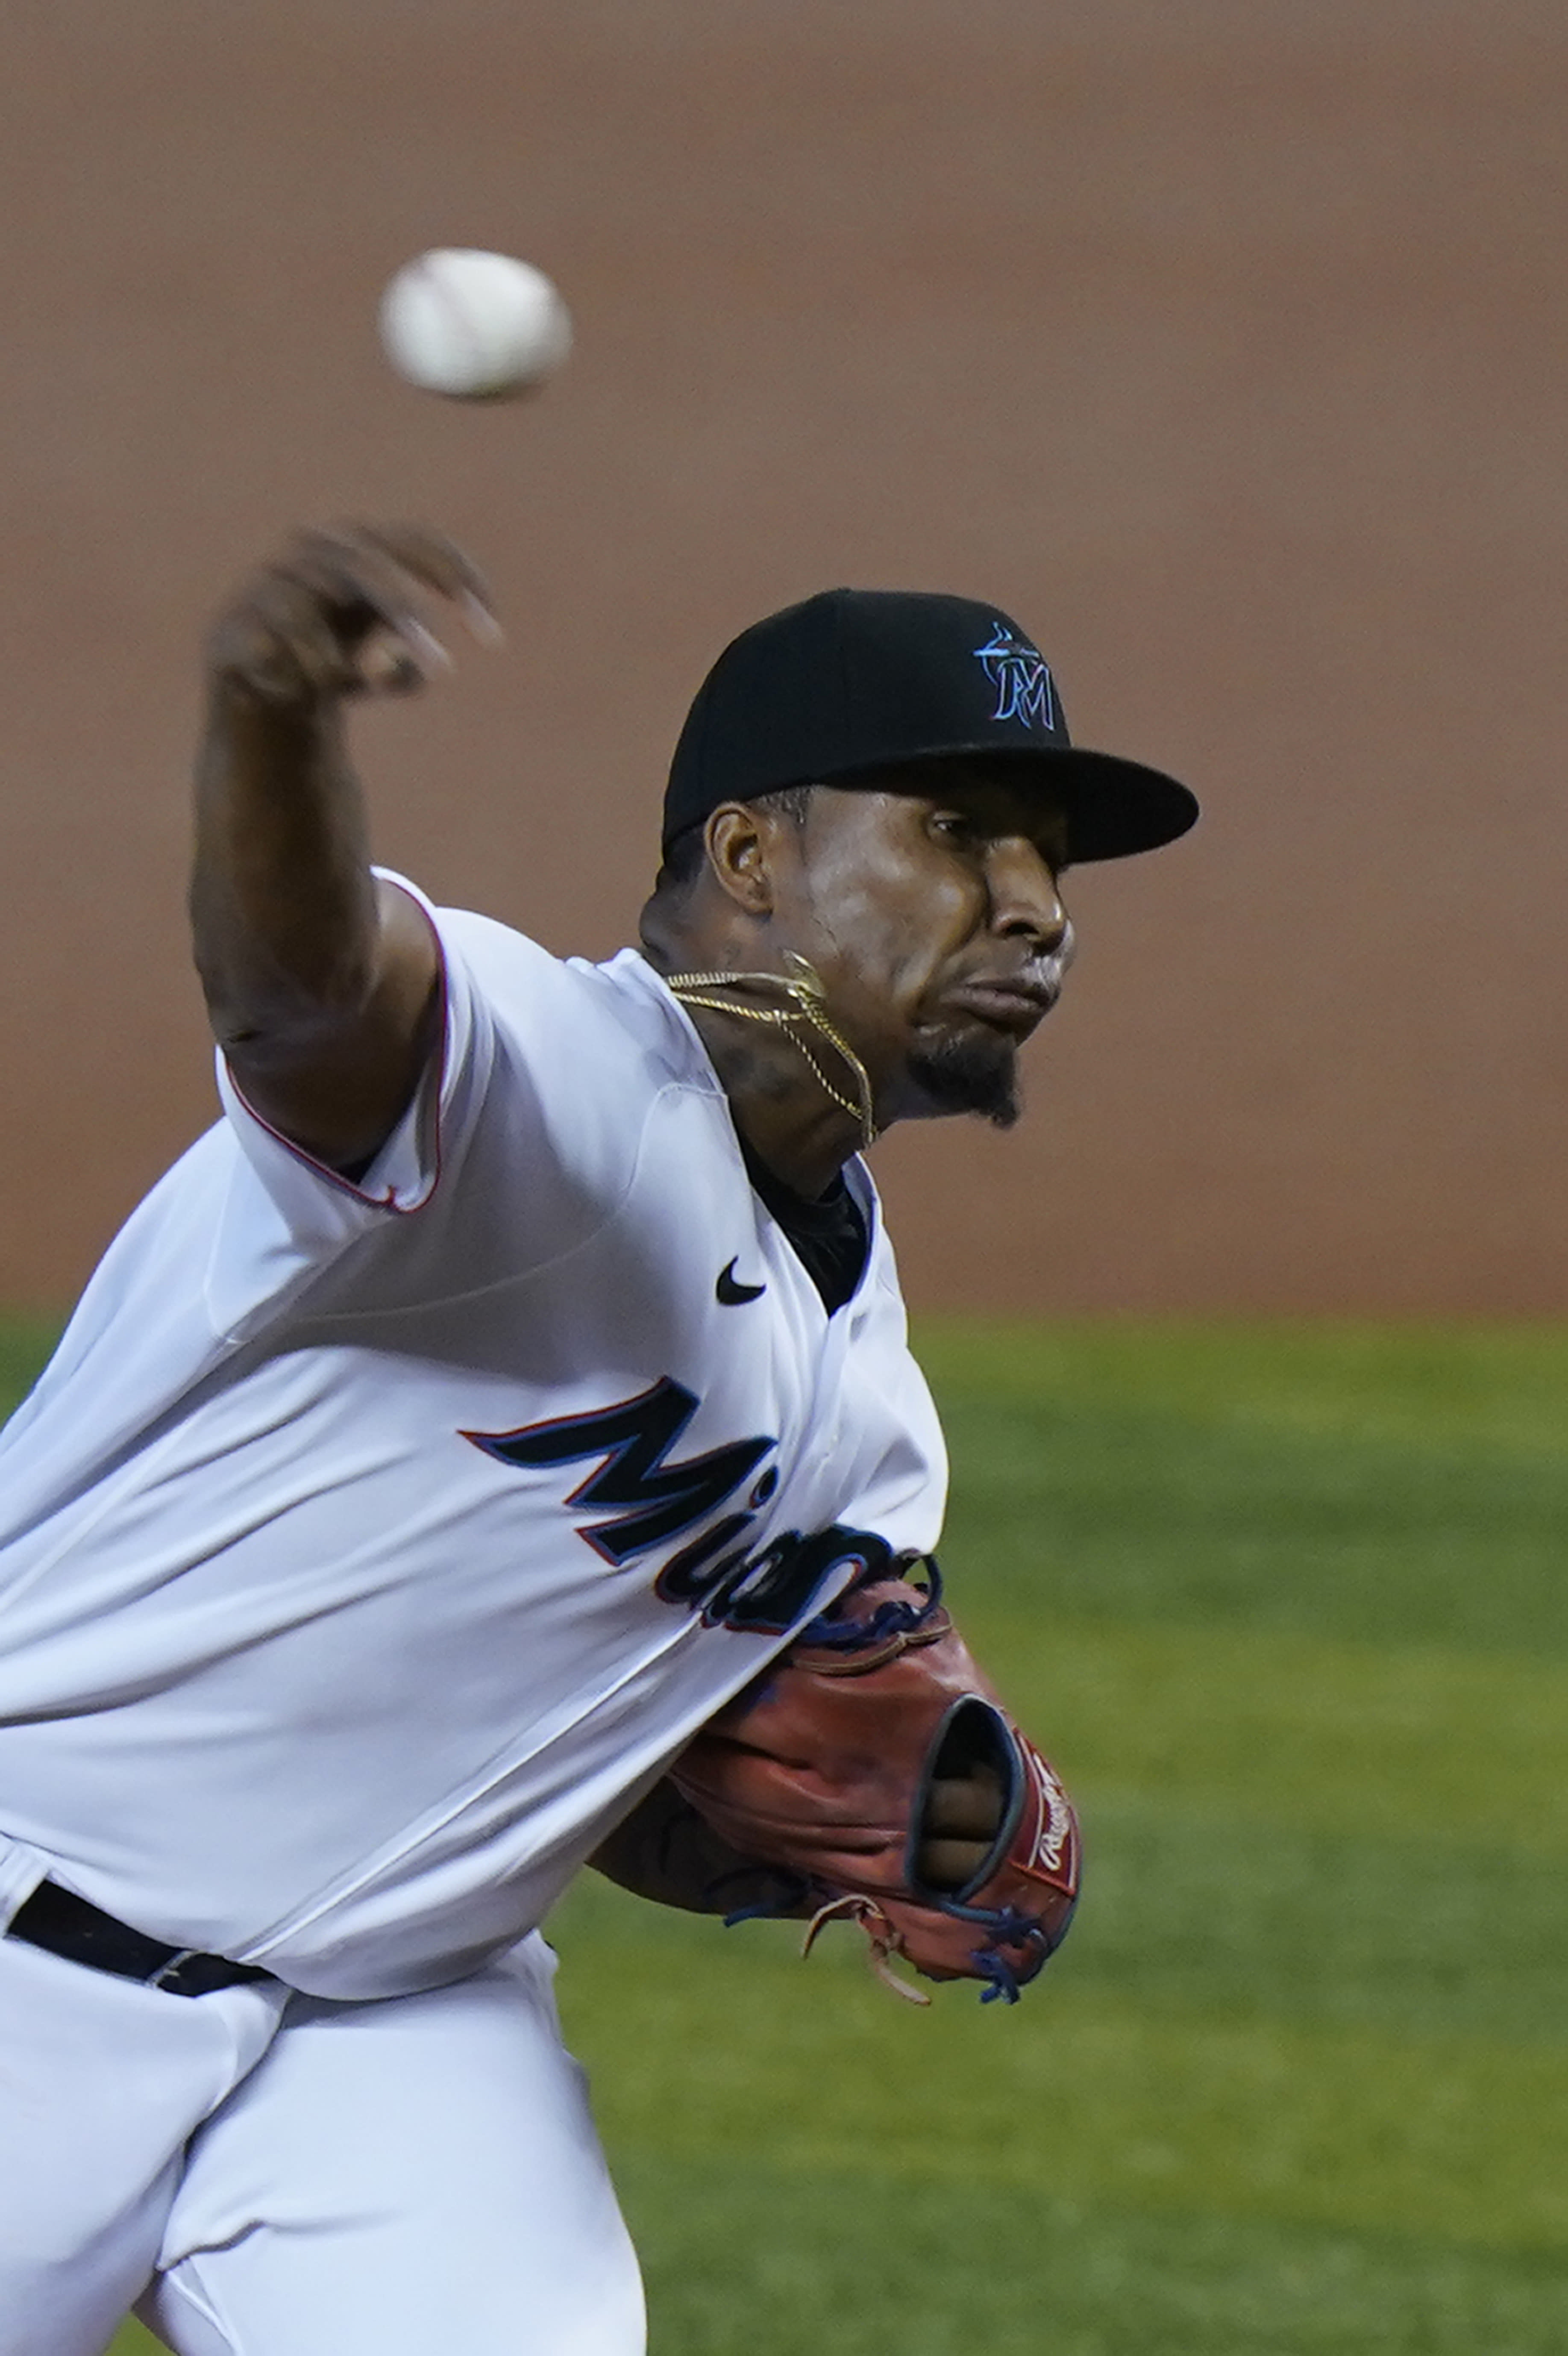 Miami Marlins' Sixto Sanchez pitches during the first inning of the first game of a baseball doubleheader against the Philadelphia Phillies, Sunday, Sept. 13, 2020, in Miami. (AP Photo/Wilfredo Lee)